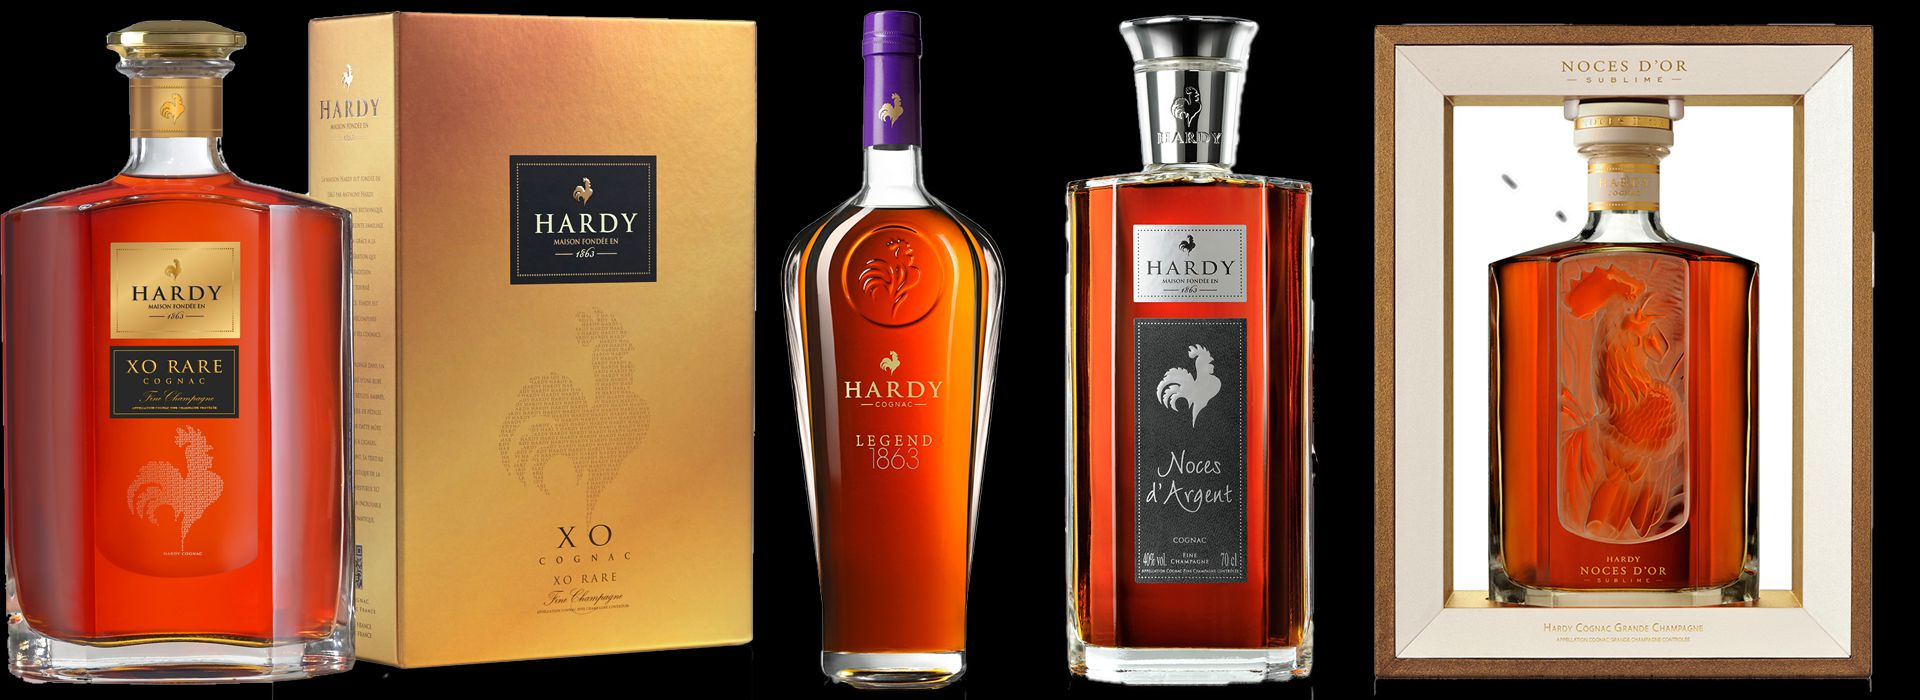 Banner-HARDY-Cognac-background-web.png